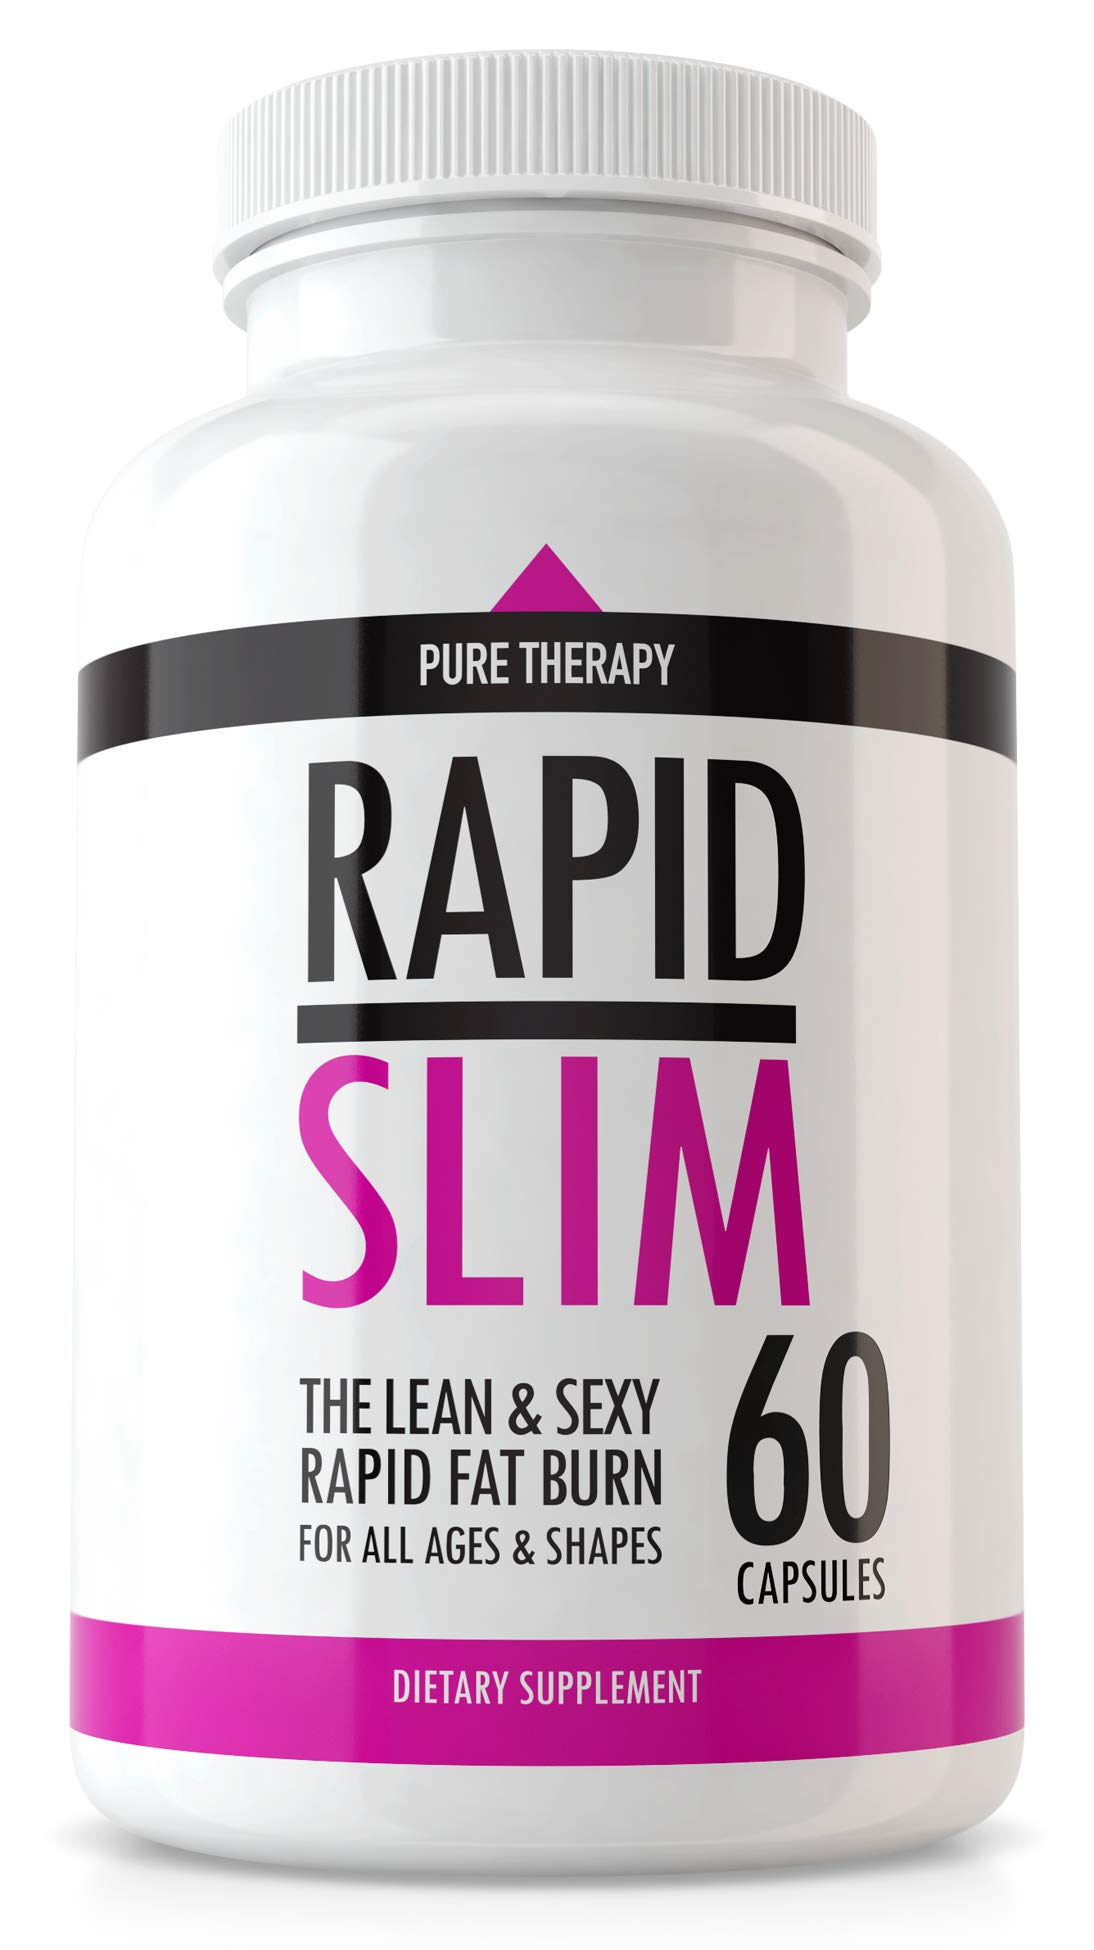 Ultra Keto Pill Rapid Slim Supplement by Pure Therapy Keto - Advanced Weight Loss Supplement to Burn Fat Fast - Keto BHB Pills for Keto Trim Burn For Men and Women - Keto Max Pills for Energy - 60 cap